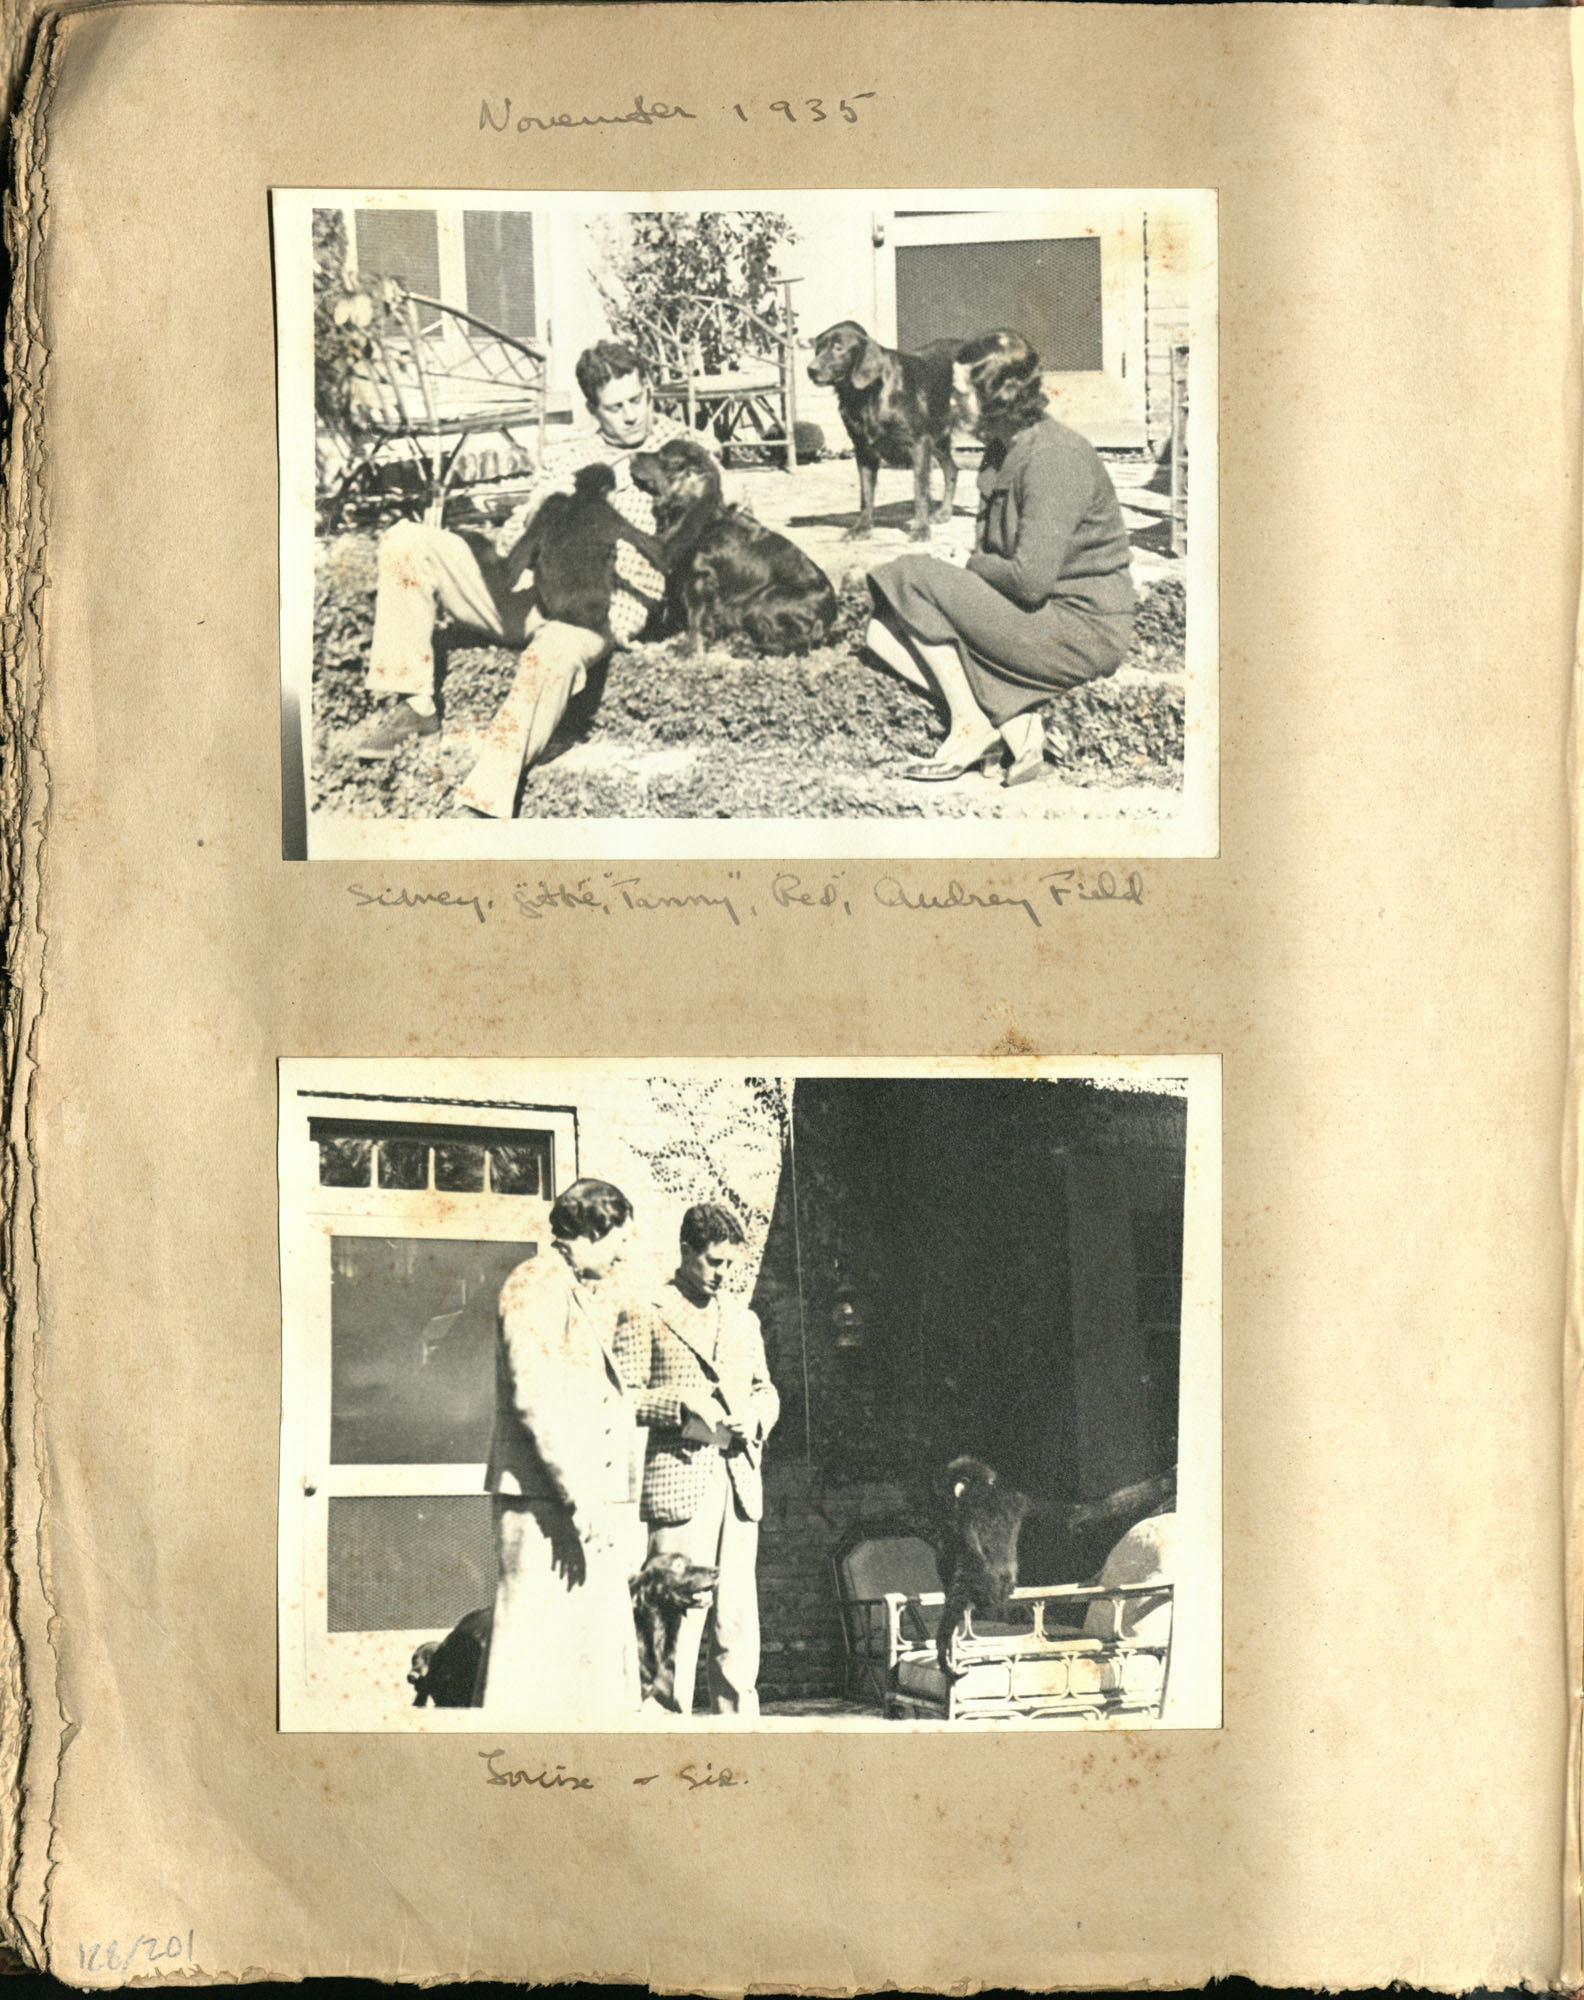 Early Medway and travels album, 1929-1937, page 128